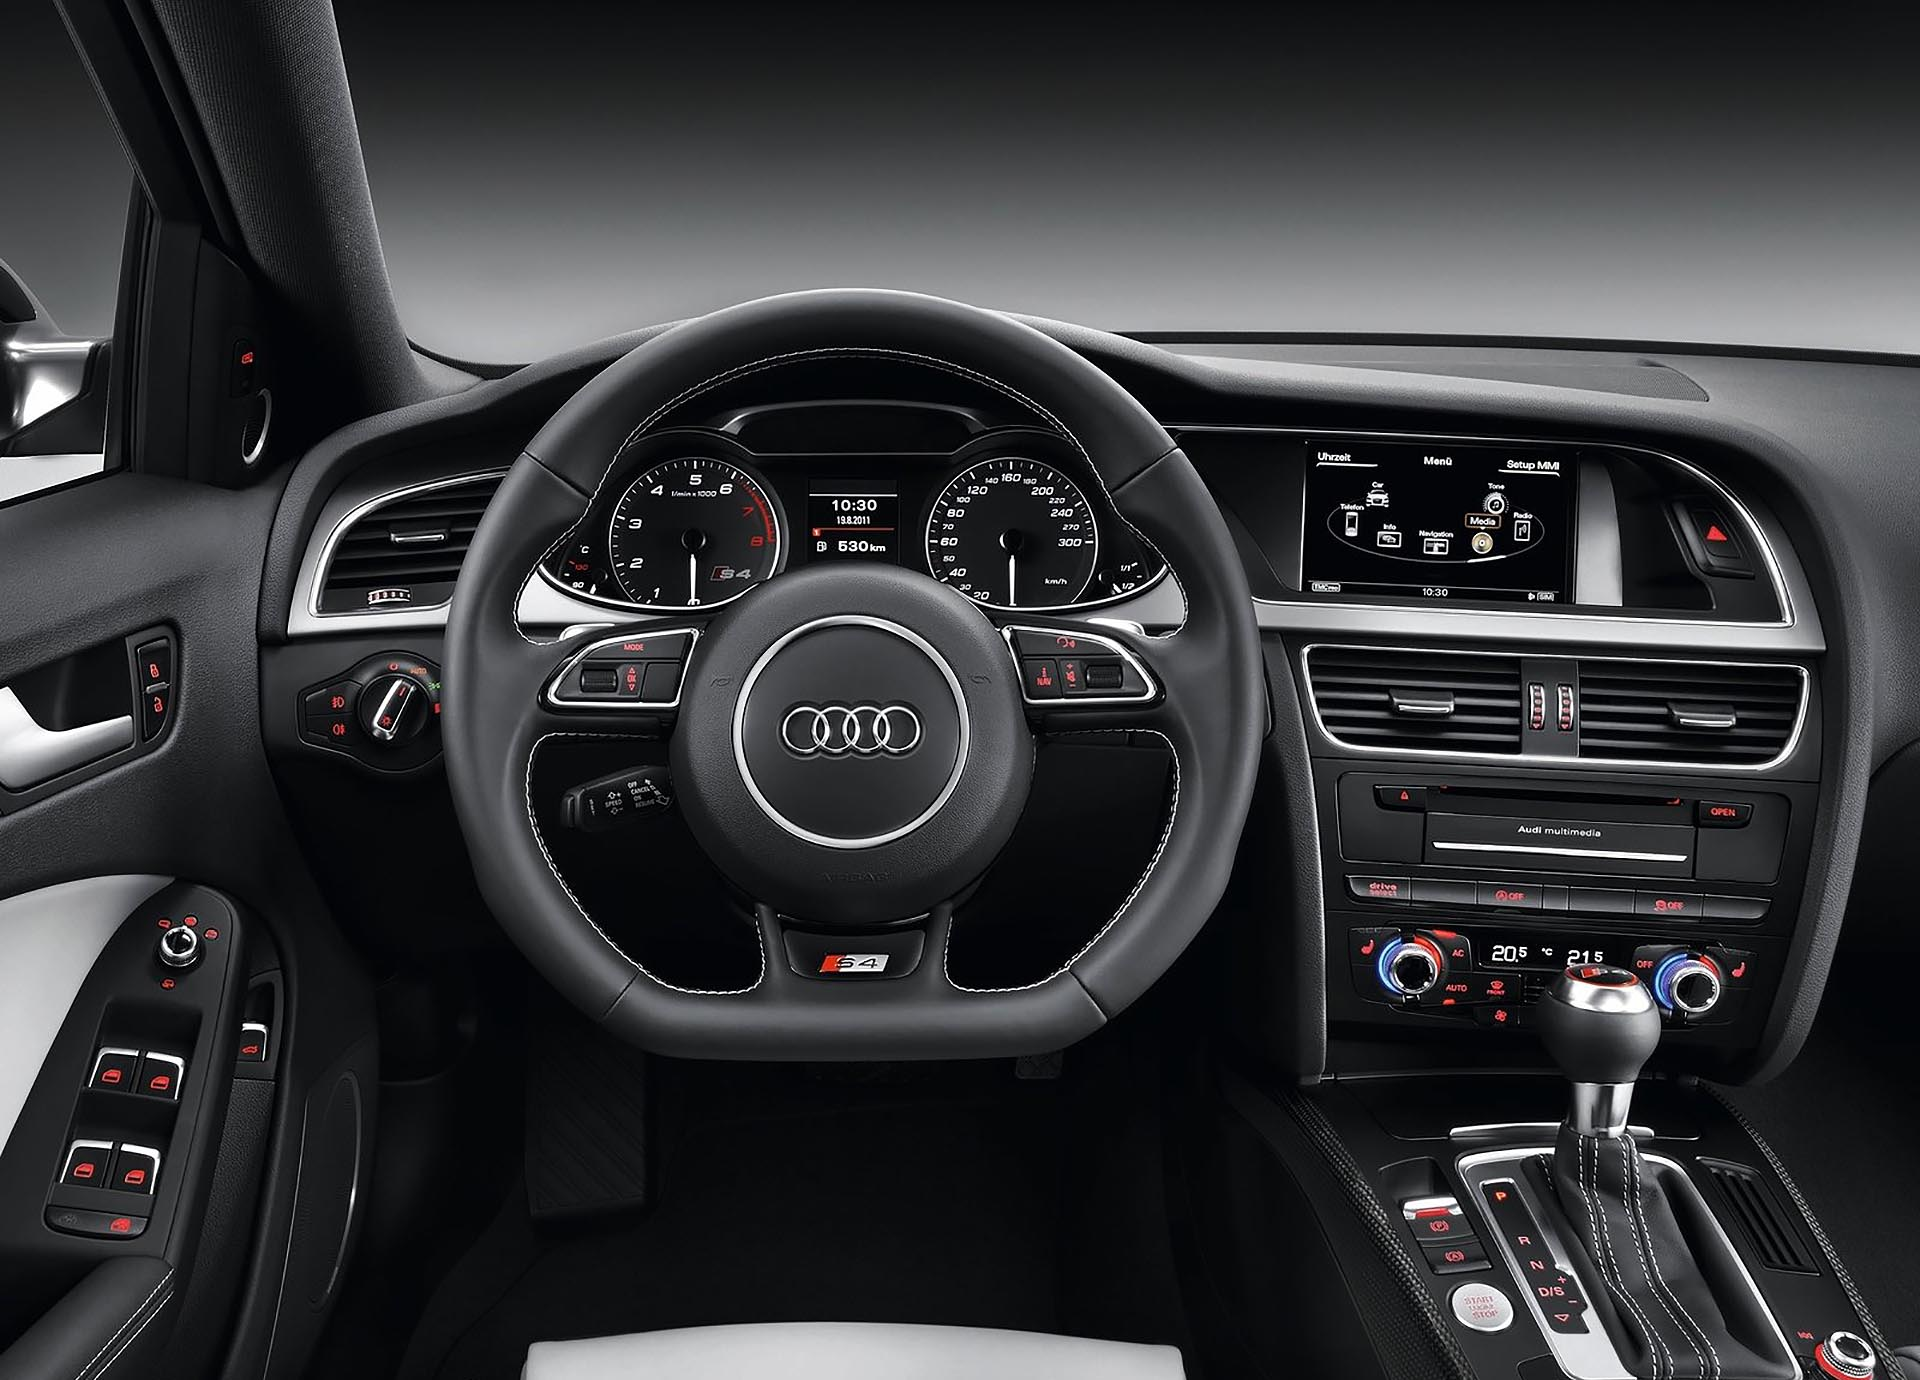 Five Reasons To Buy An Audi S4 Over An Audi A4 B8 B8 5